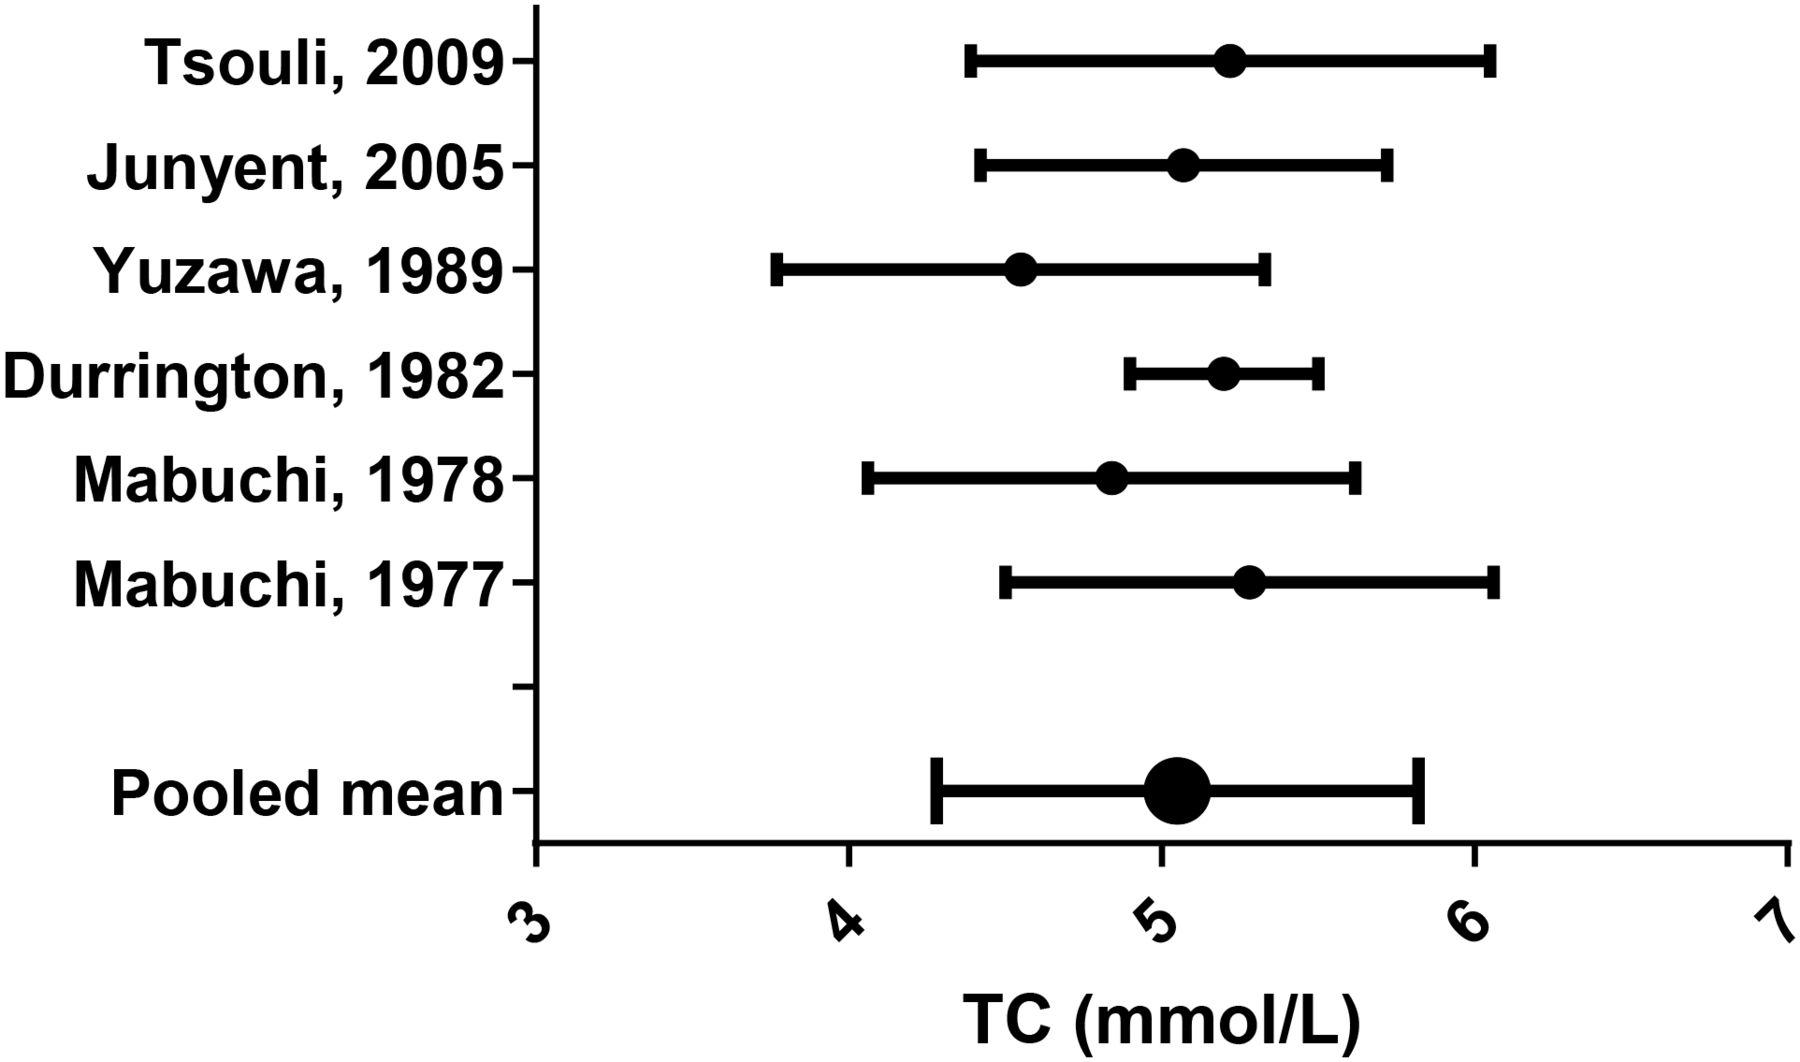 Is Higher Serum Cholesterol Associated With Altered Tendon Structure